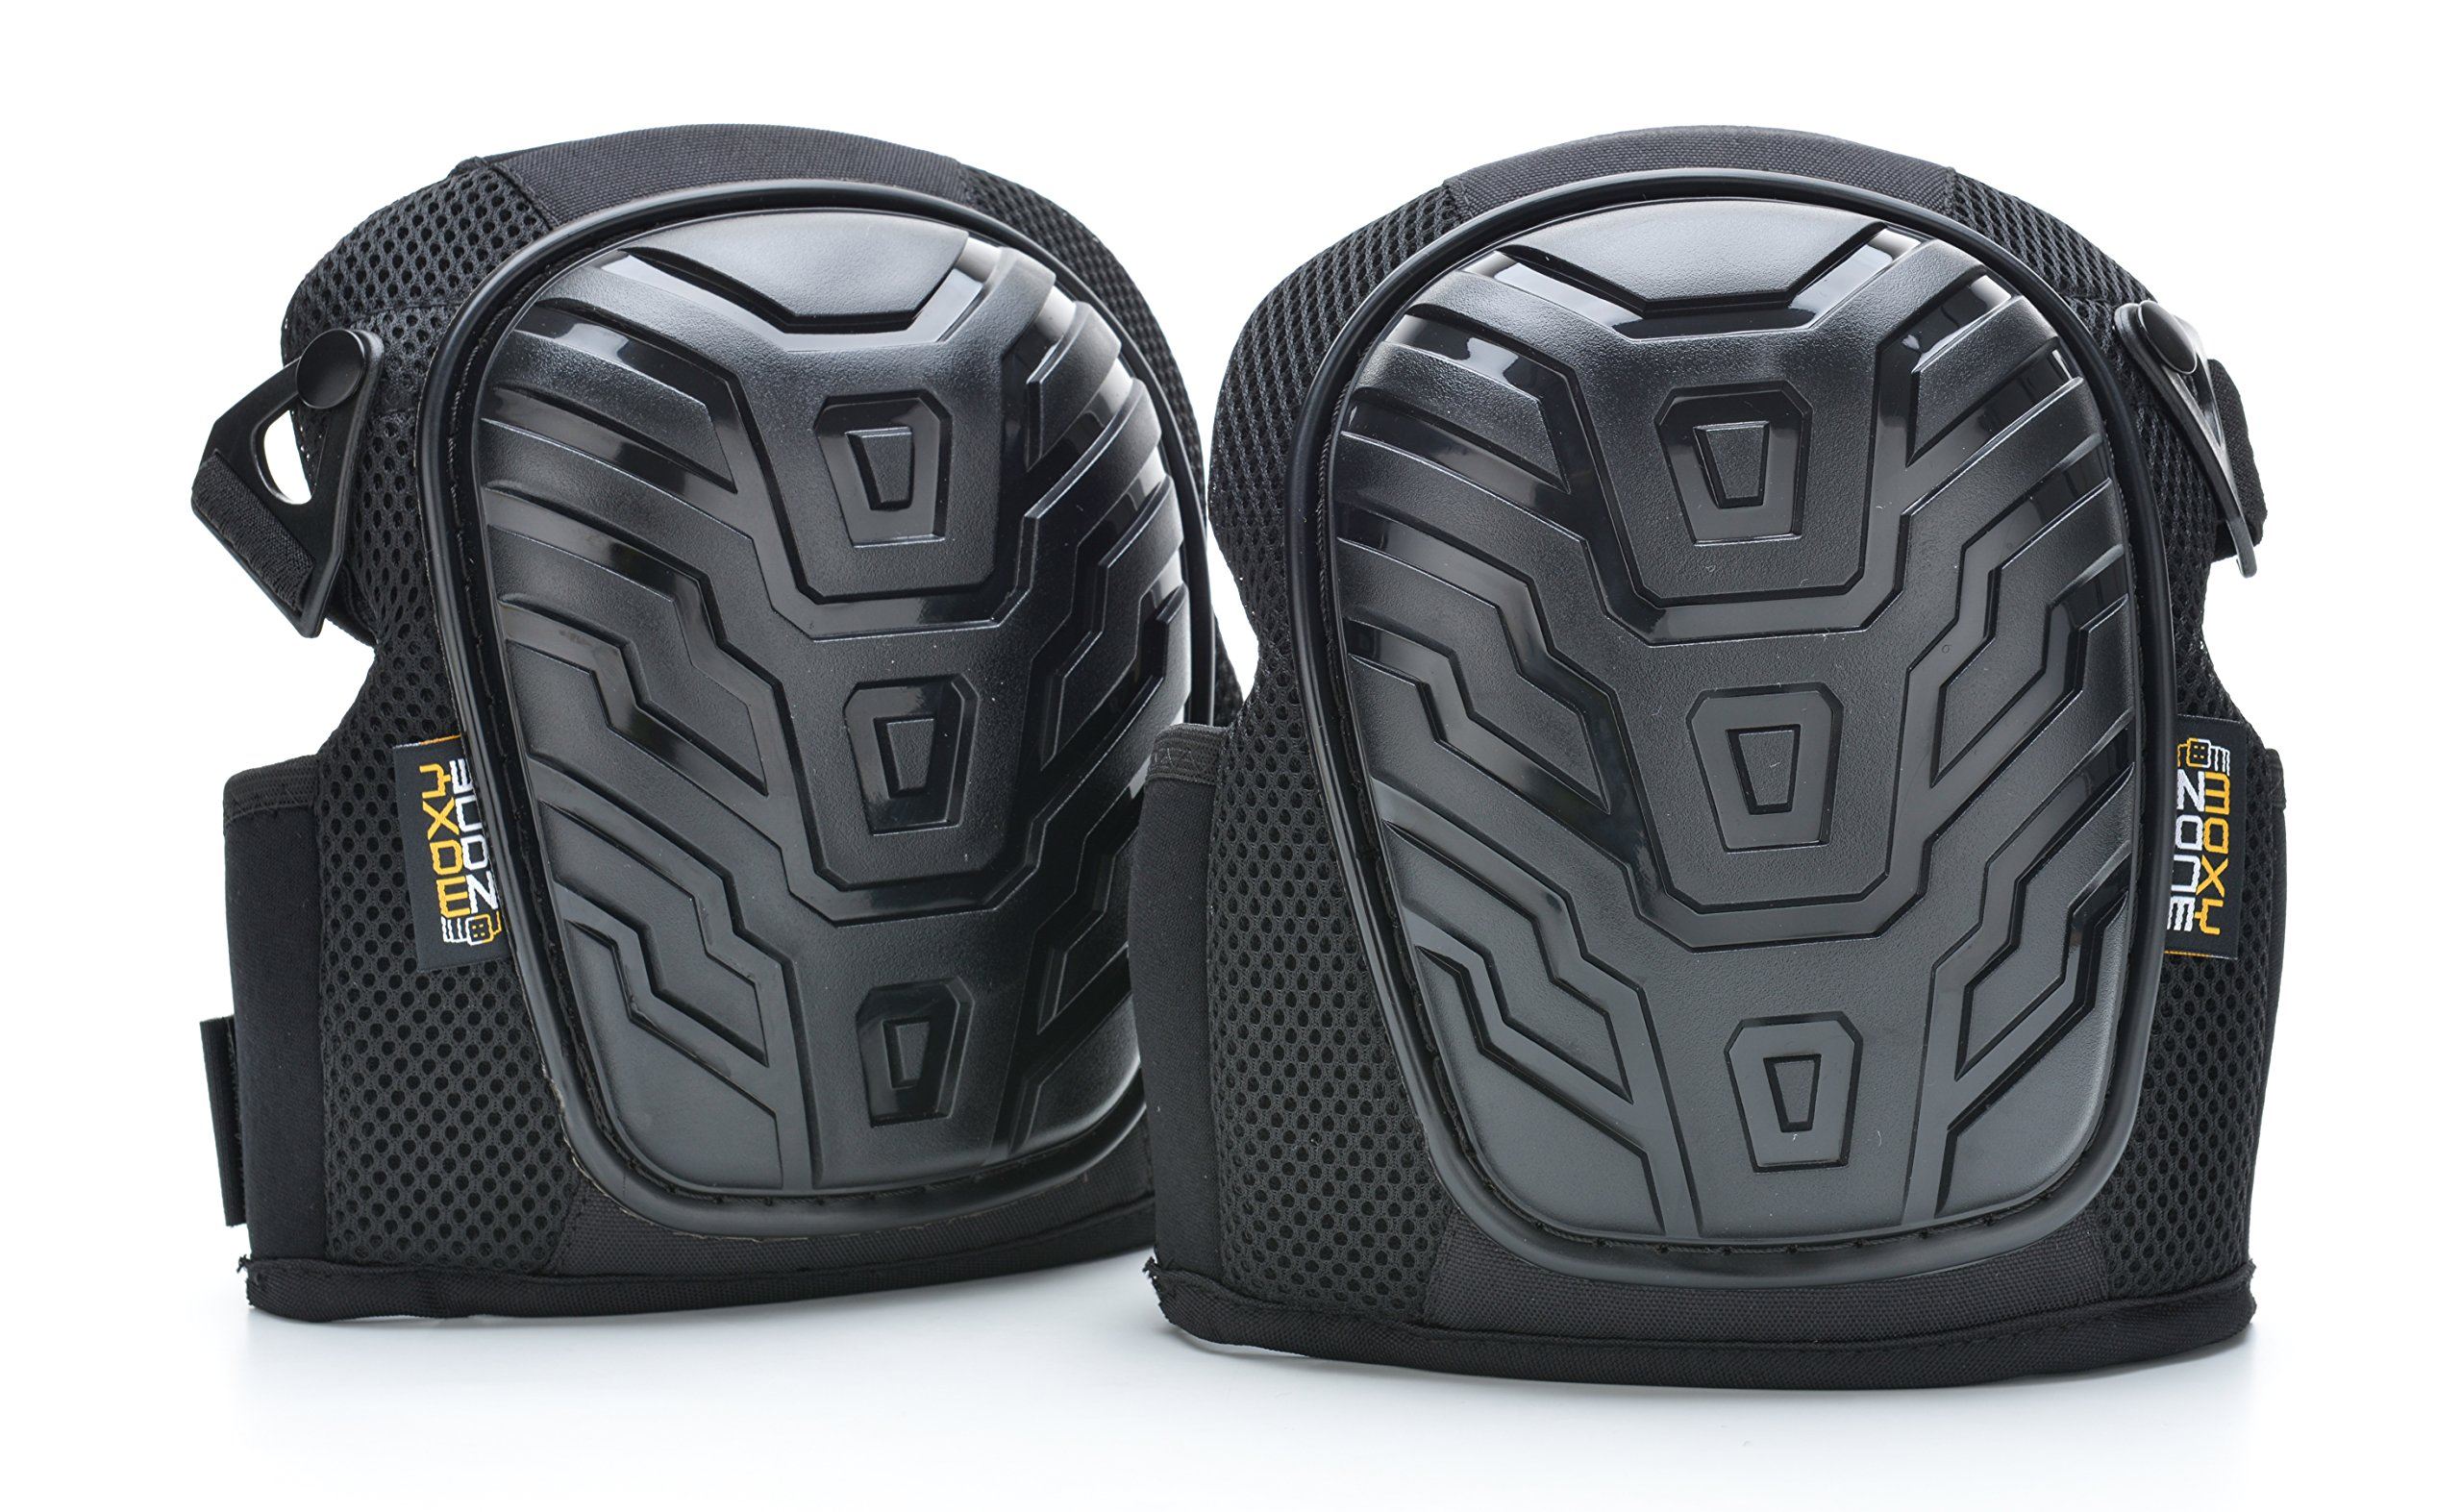 Moxy Zone Professional Knee Pads - Heavy Duty Foam Padded Shell and Comfortable Gel Cushion - Kneepads for Construction, Yard Work, Gardening, Flooring, Tile - Adjustable Straps for Men and Women